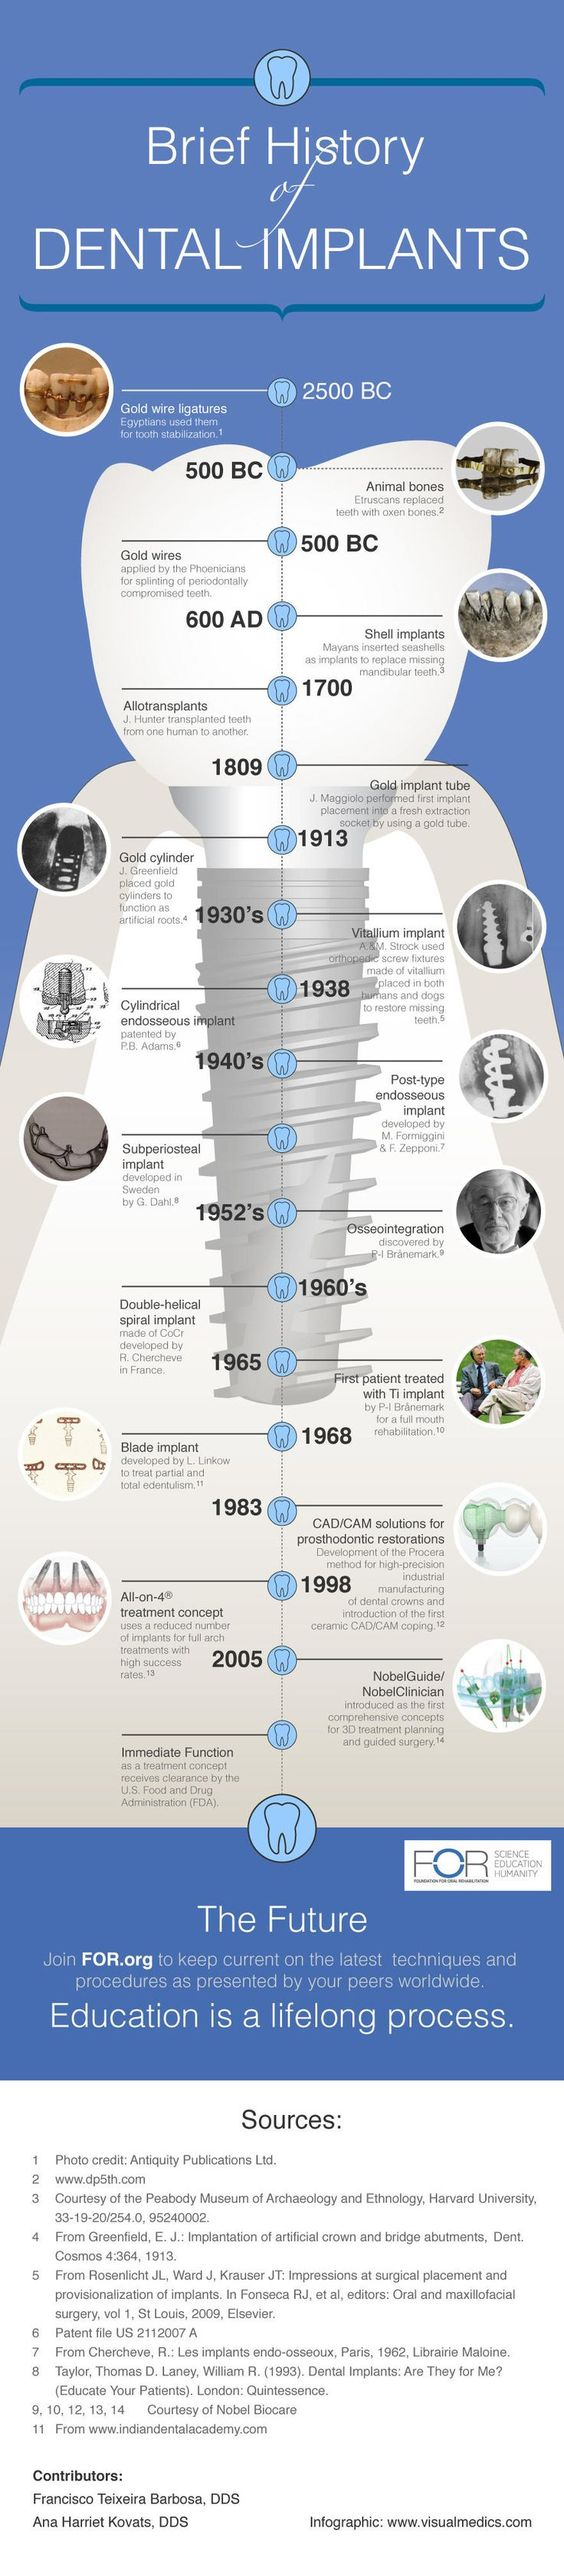 history of implants